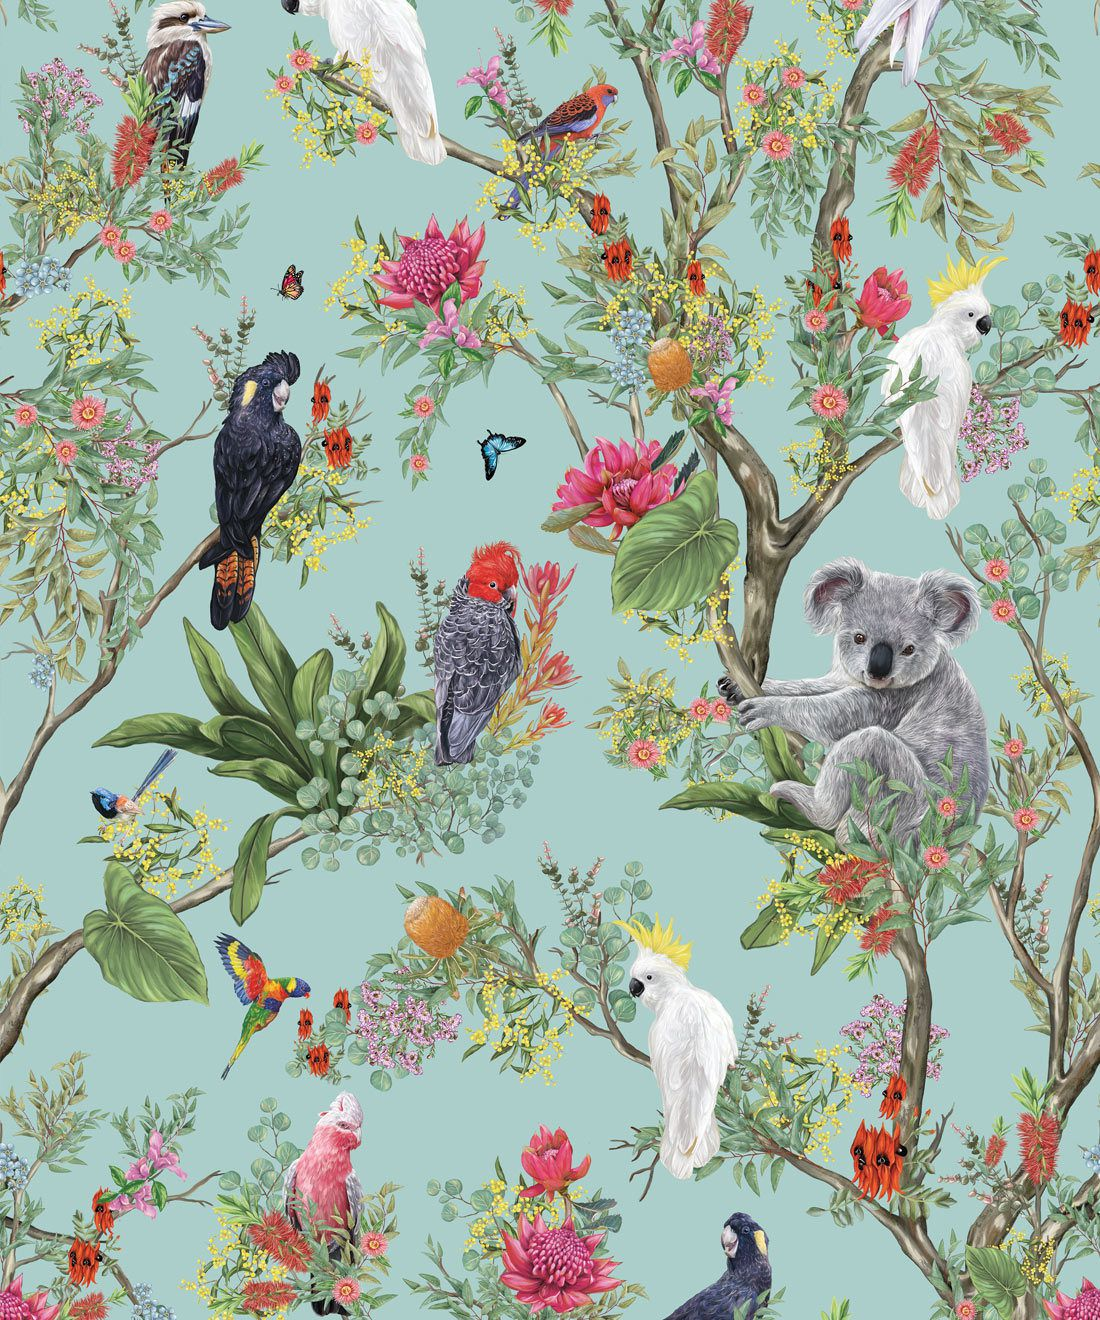 Australia Wallpaper • Cockatoos, Koalas, Parrots, Finches • Milton & King USA • Mint Green Wallpaper Swatch